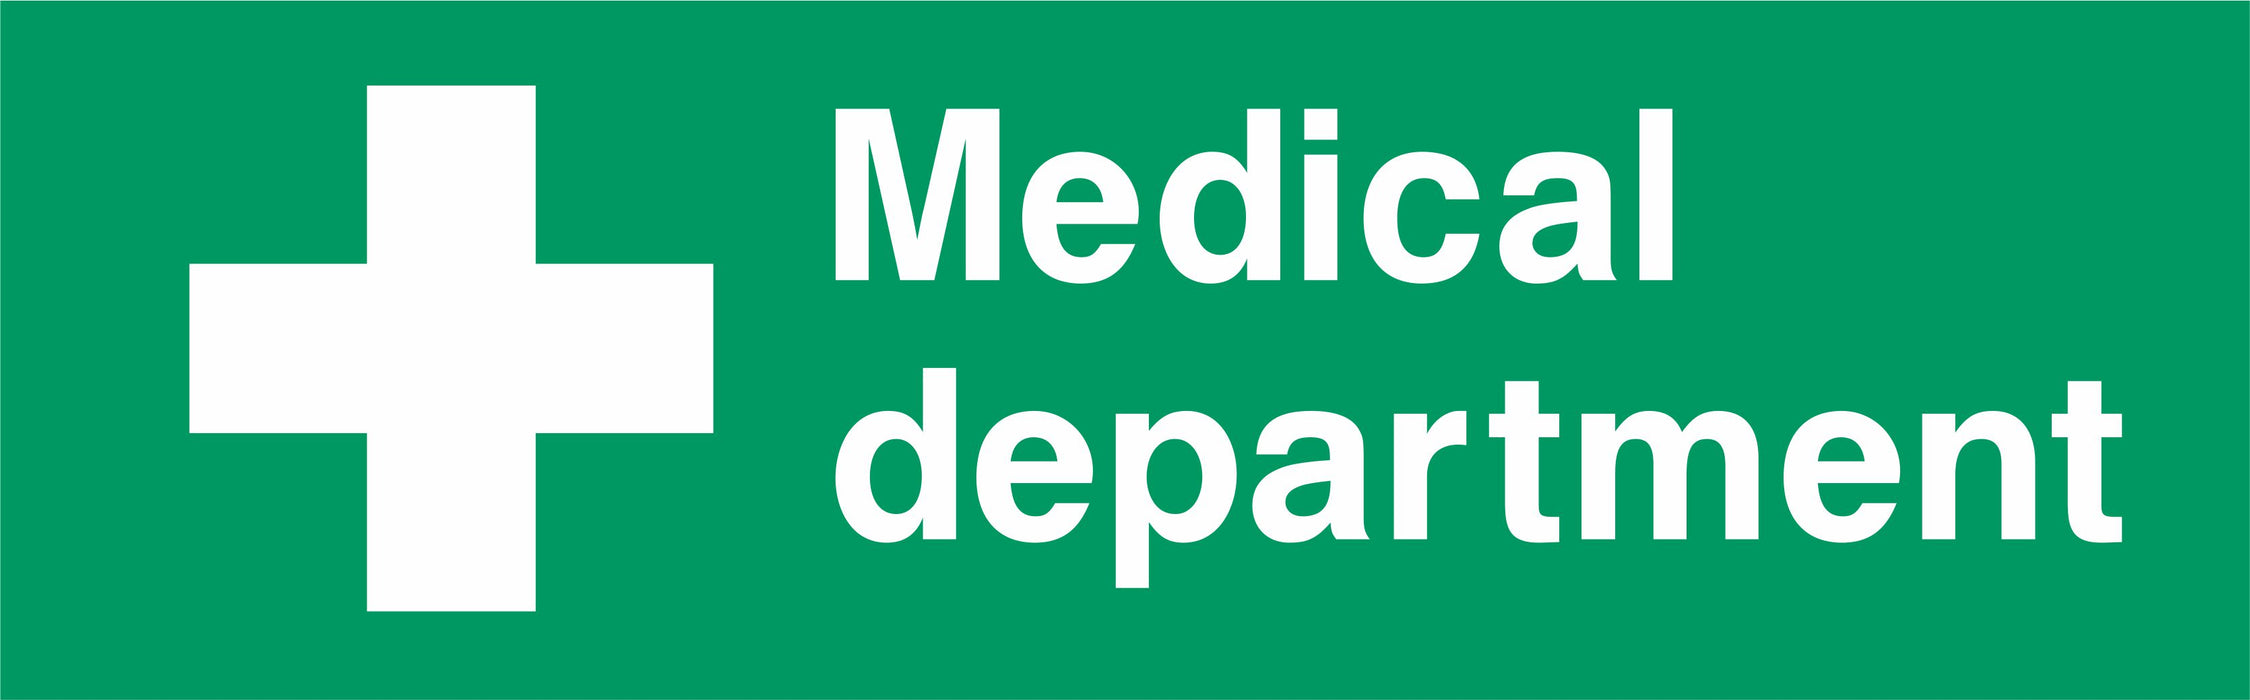 Medical department